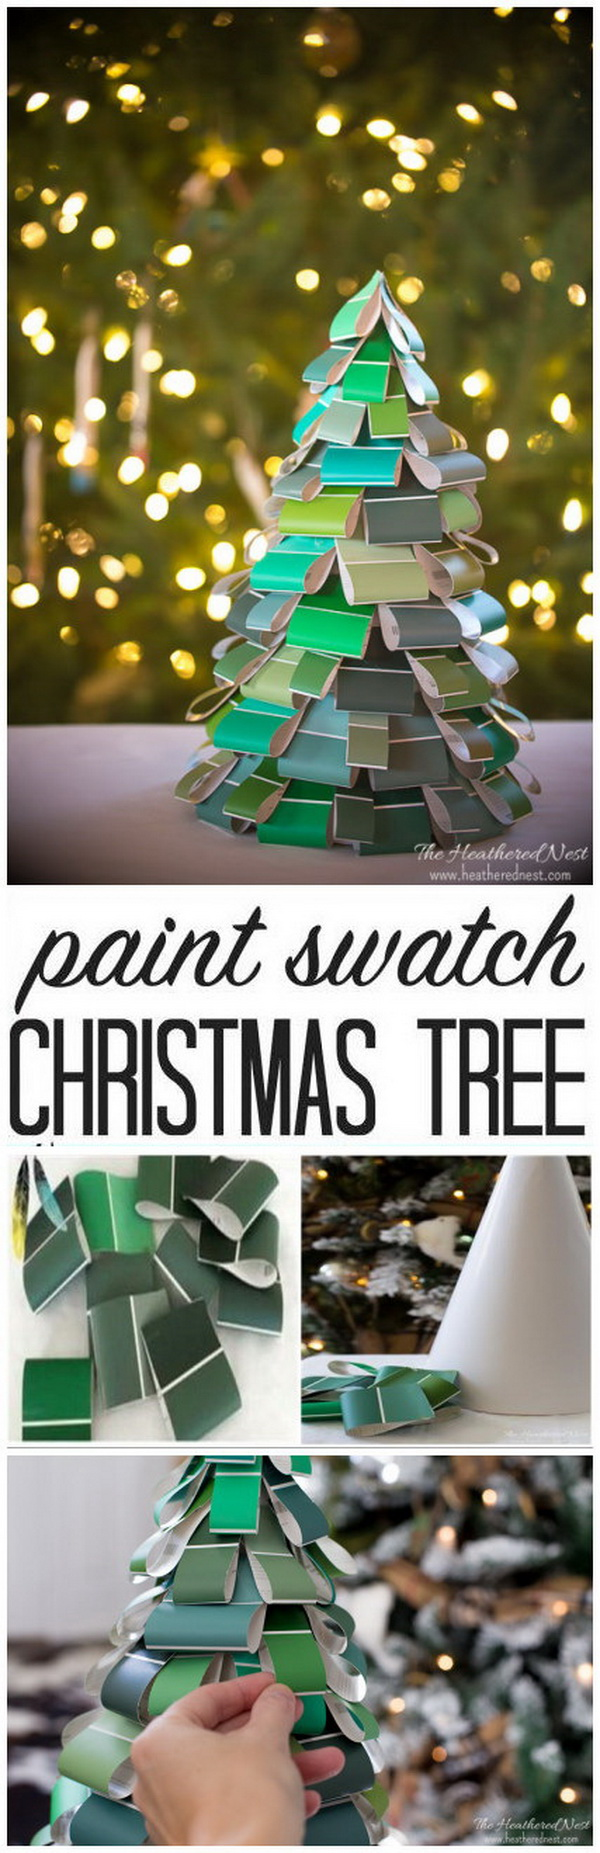 DIY Christmas Tree Paint Swatch Craft.